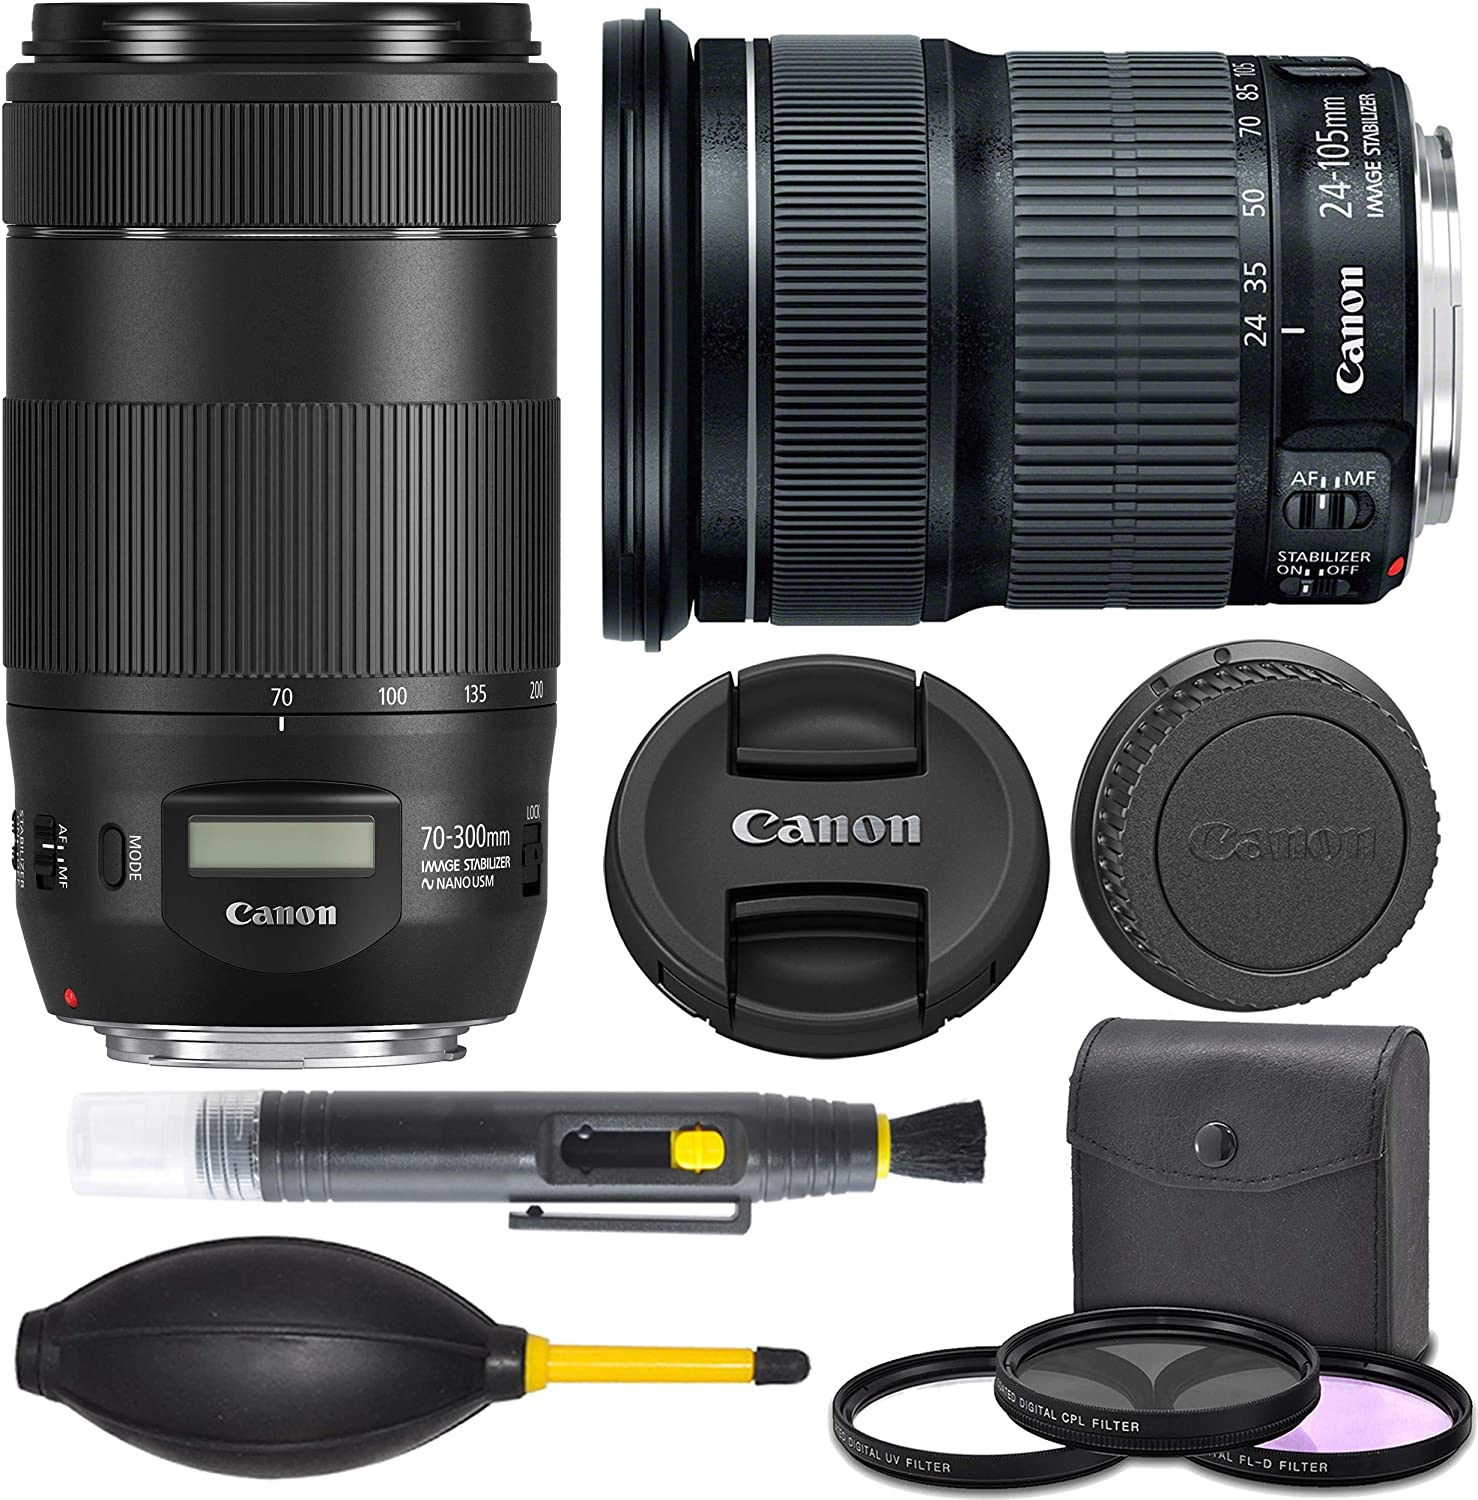 AOM Full Frame Canon EF 24-105mm And EF 70-300mm Bundle